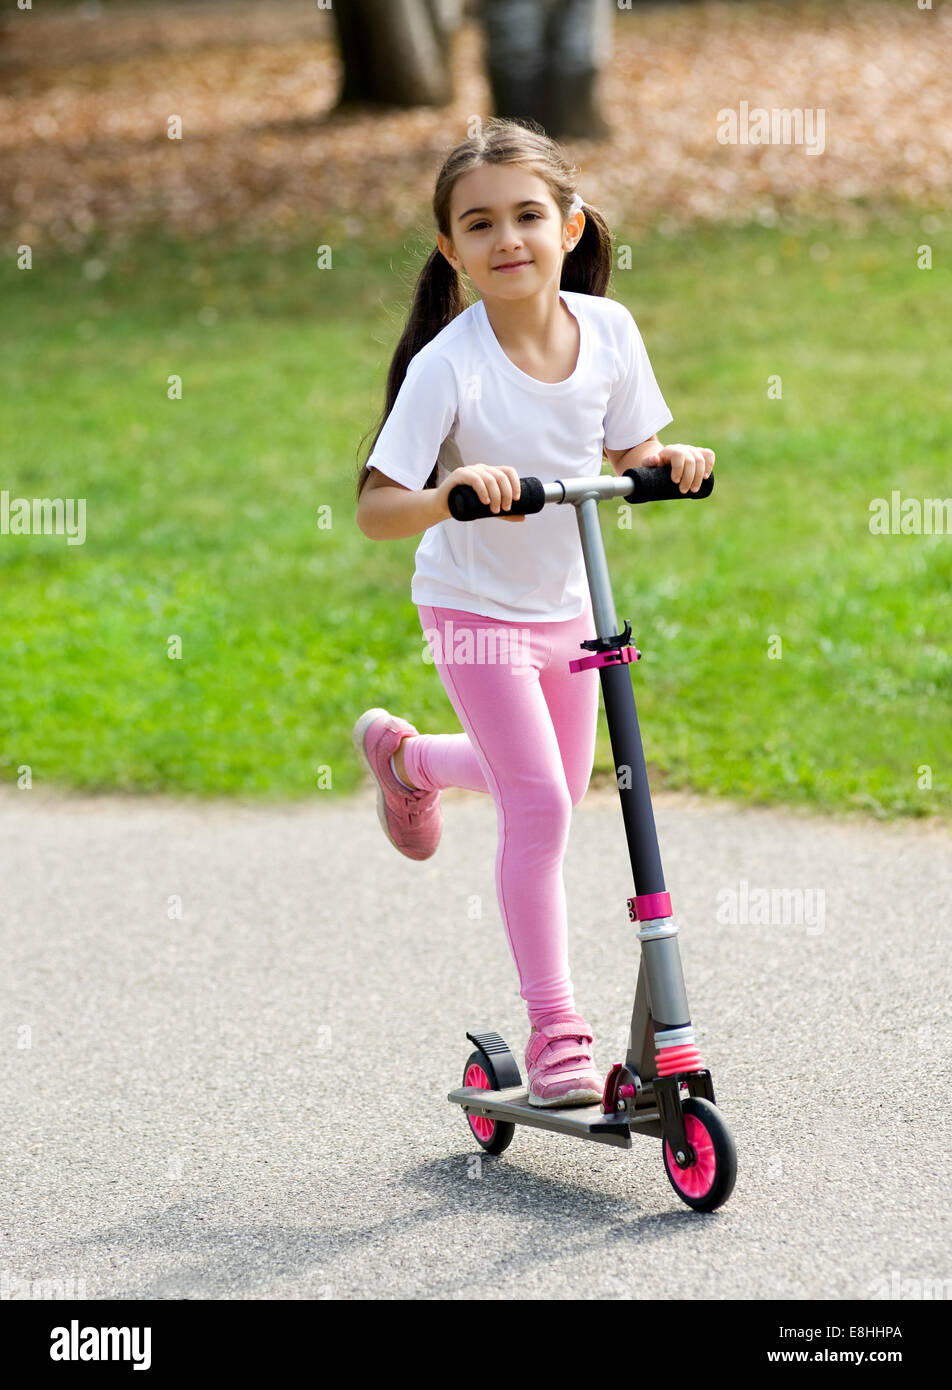 Cute young girl in pink with her brown hair in pigtails playing on a push scooter outdoors on a road having fun - Stock Image